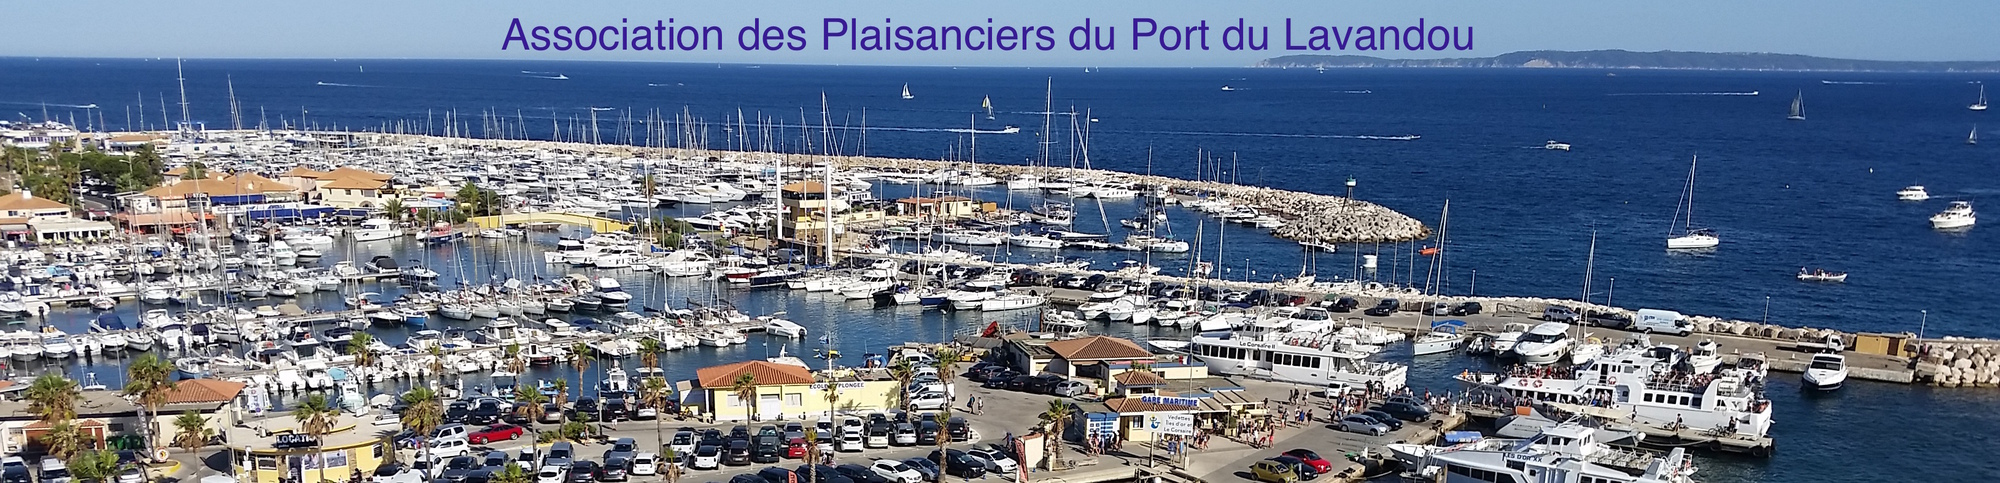 Association des Plaisanciers du Port du Lavandou